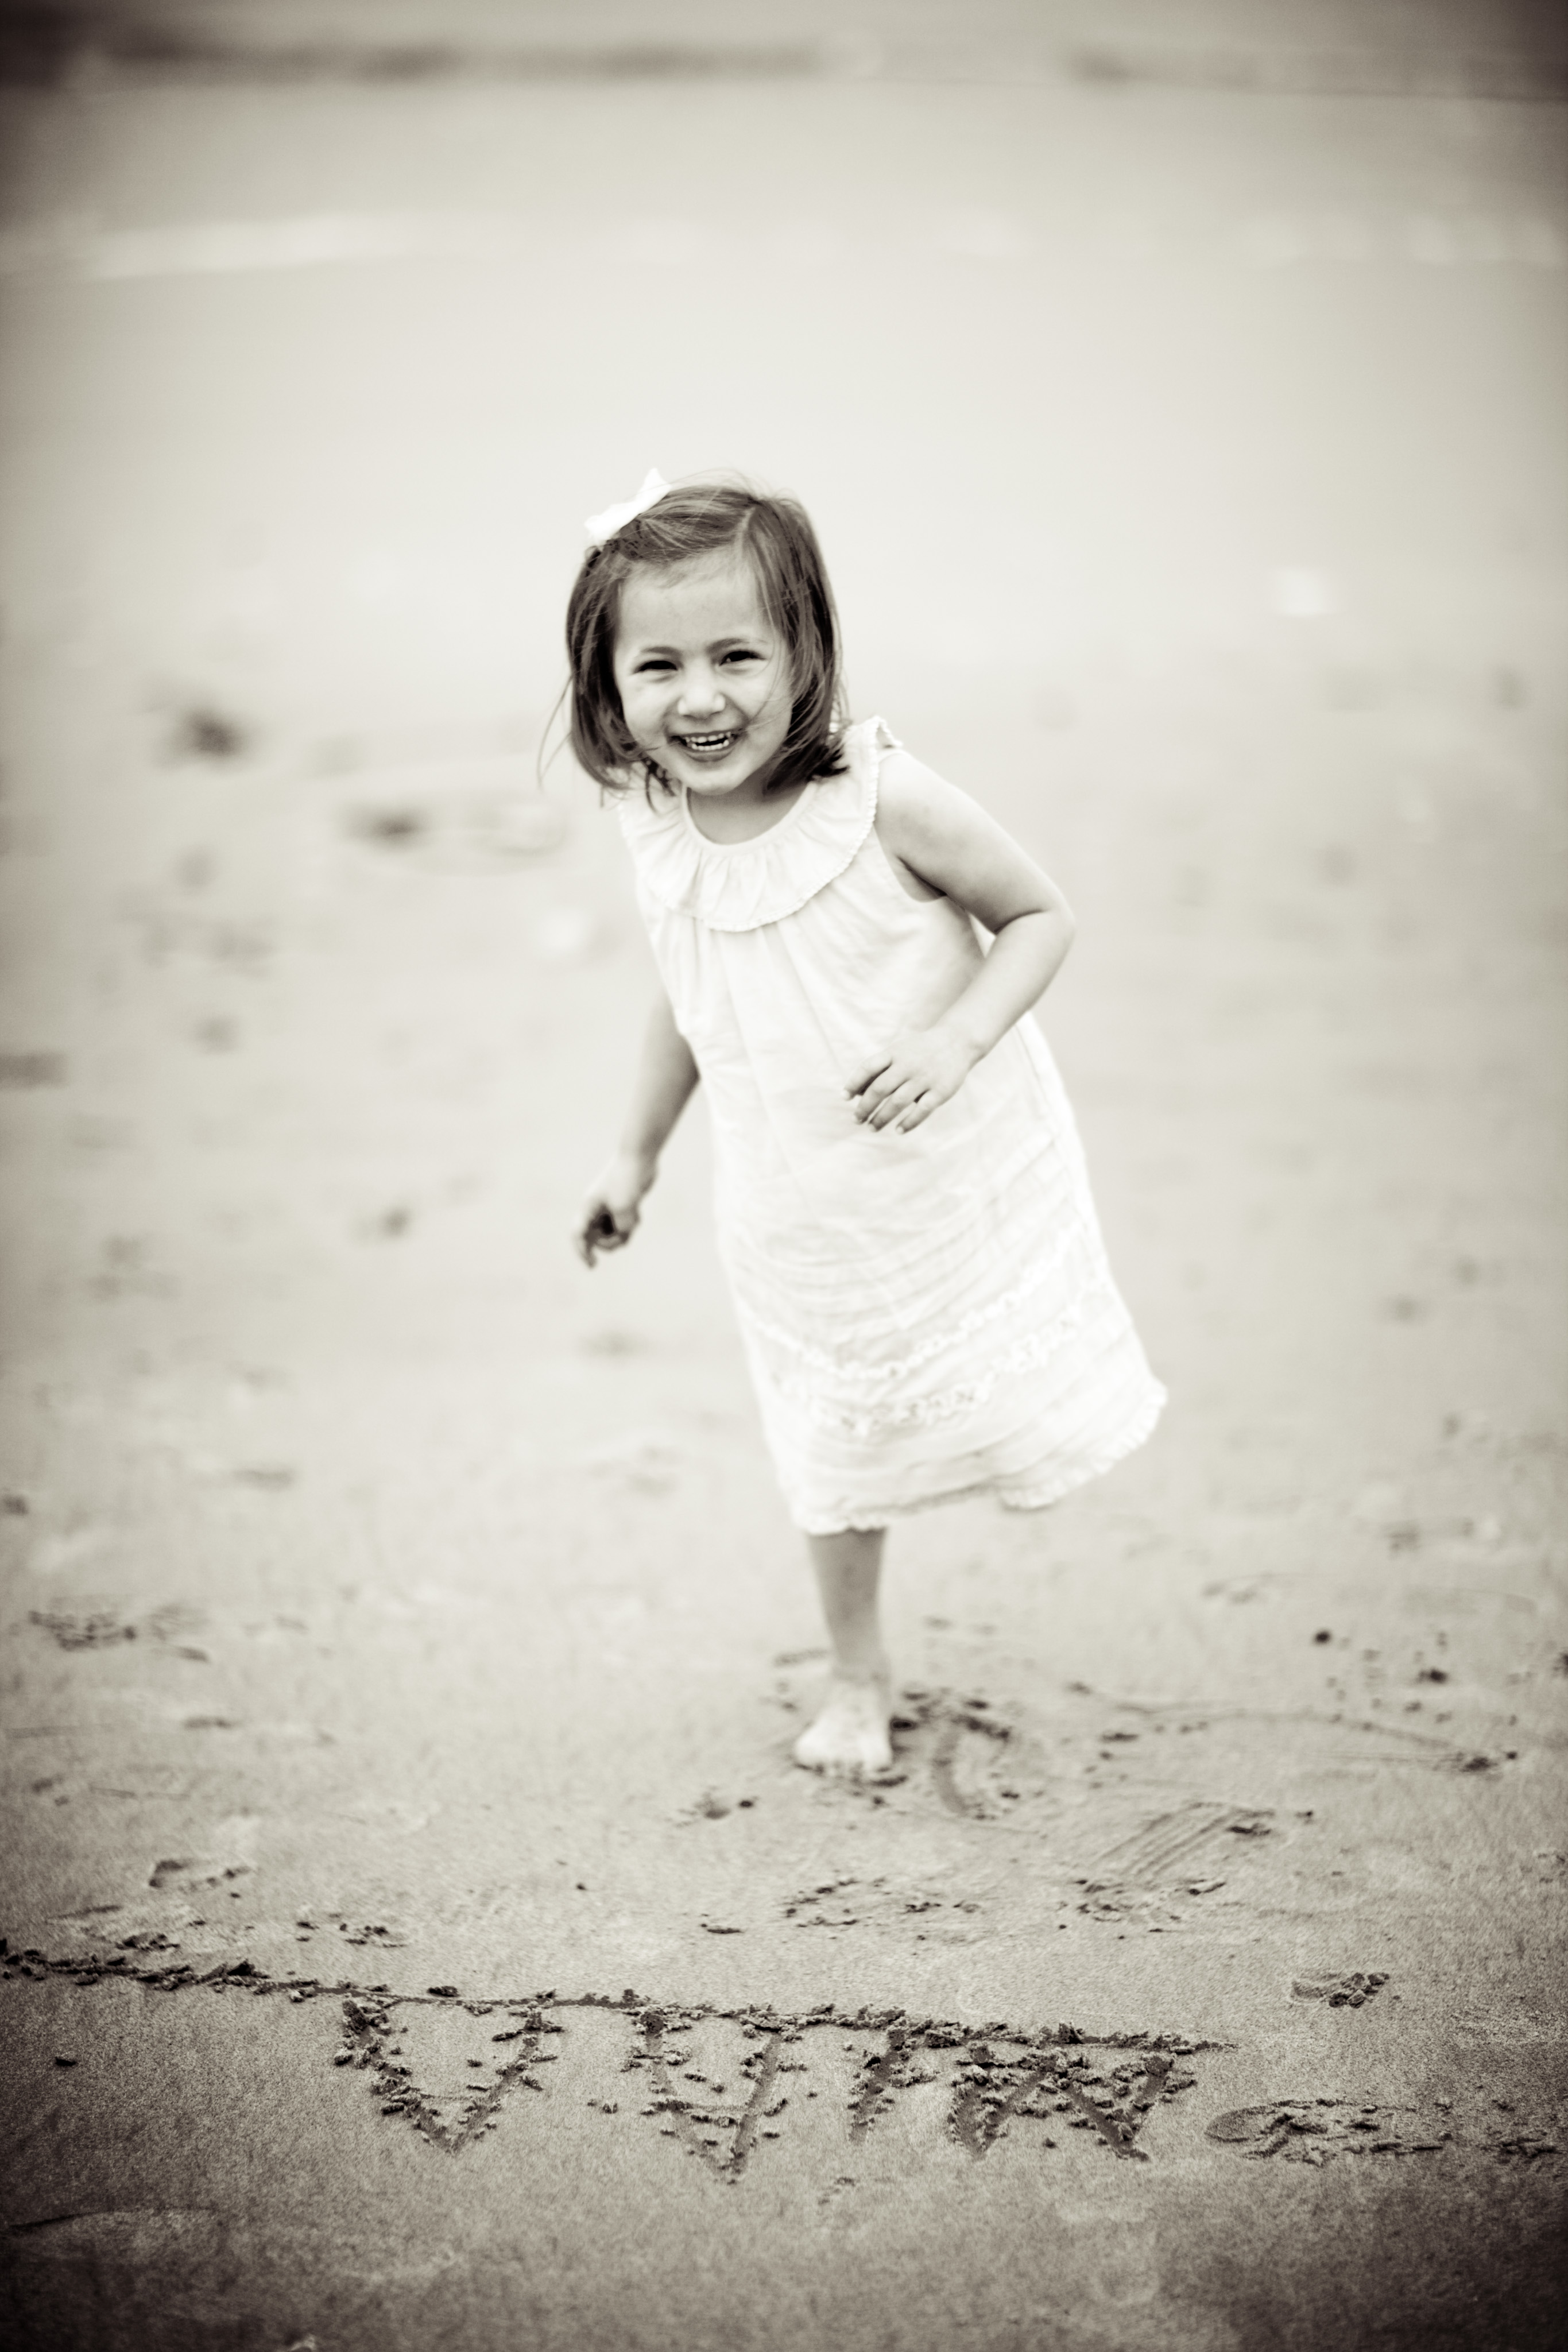 black and white photo of little girl standing on the beach with her name written in the sand in front of her